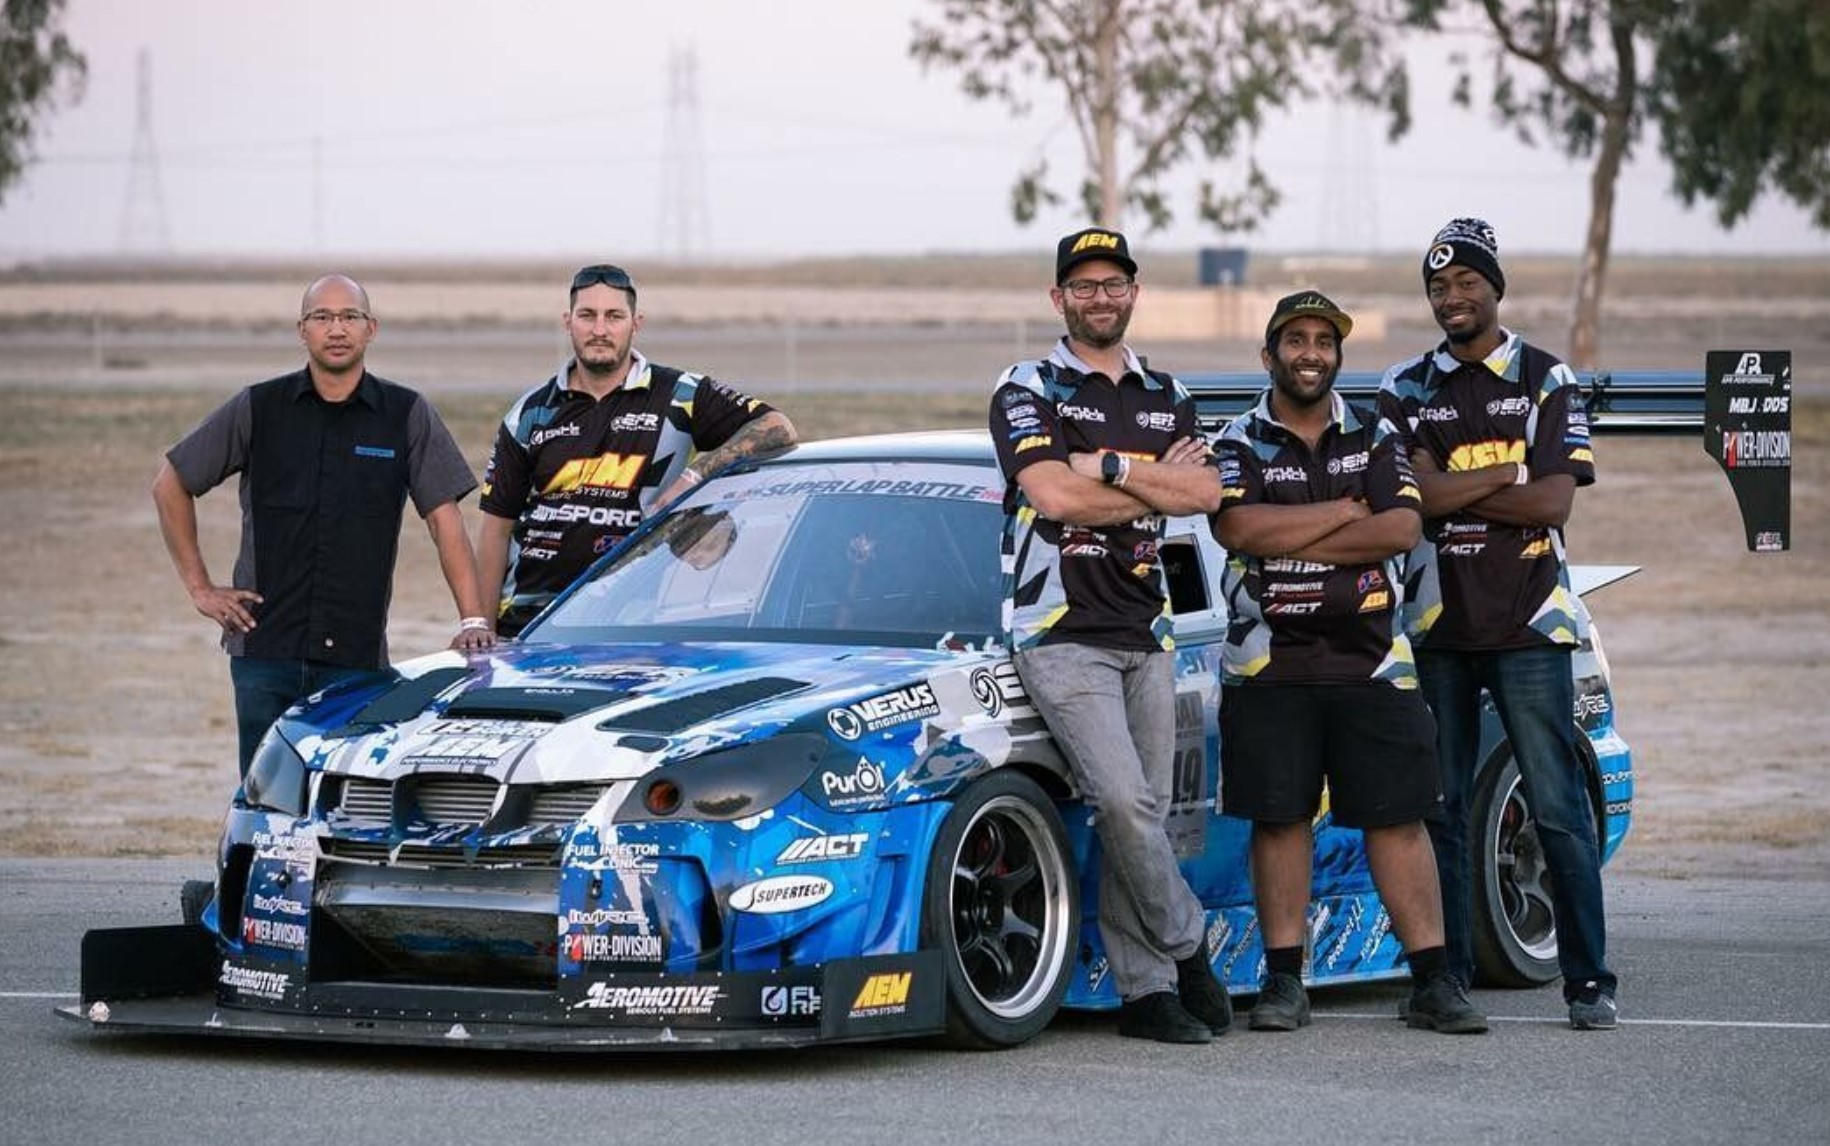 Whiteline USA Team Jager Racing1